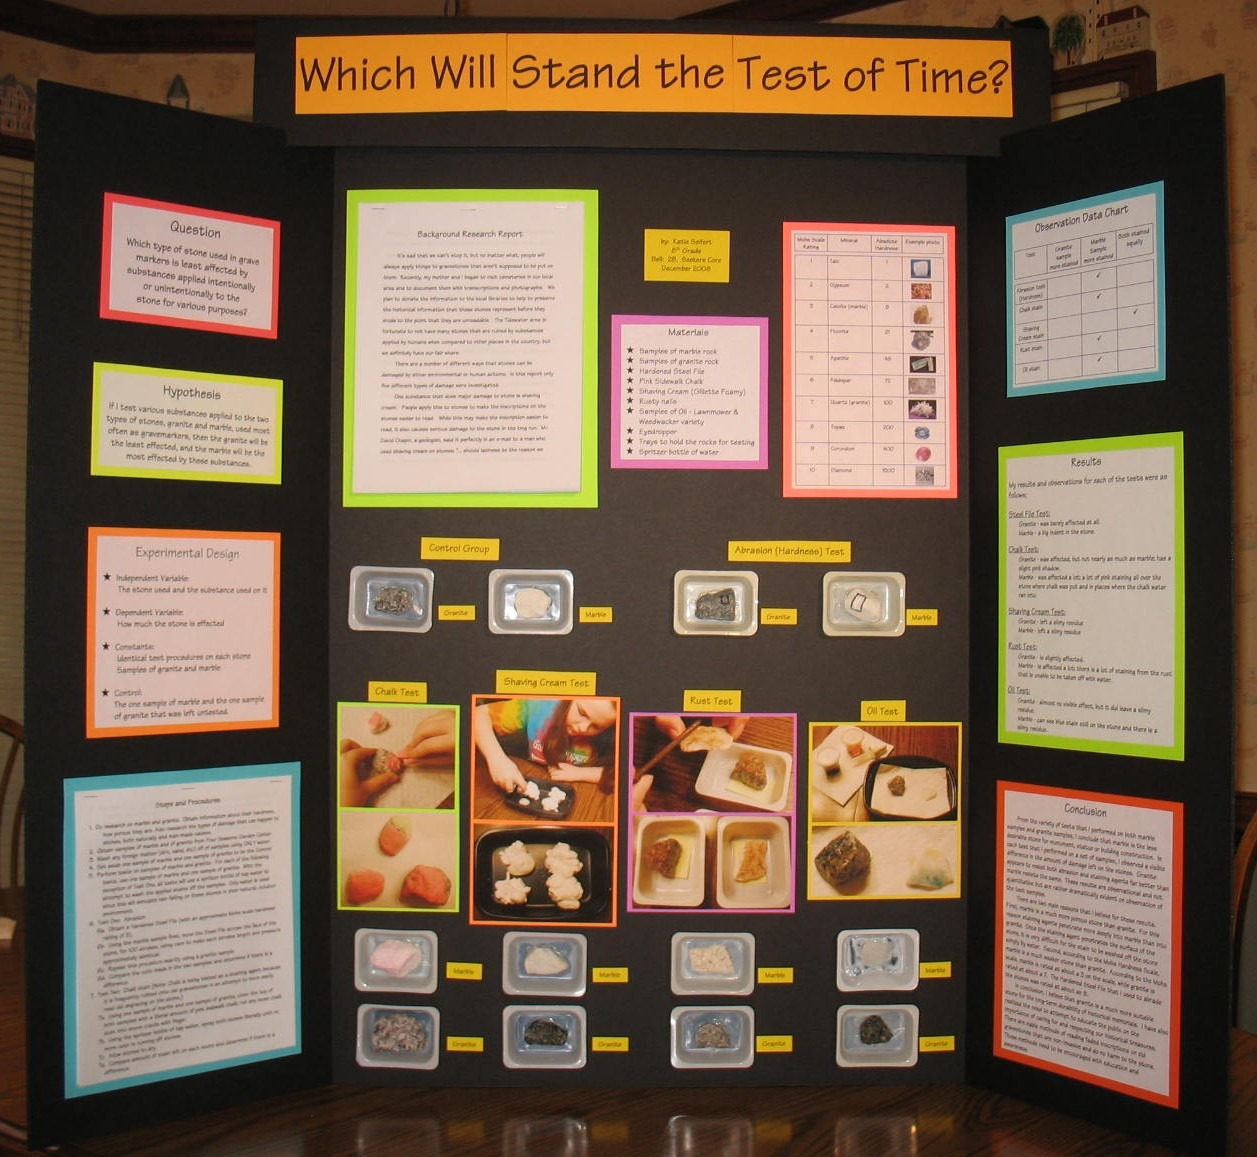 science fair projects 8th grade Mindfuel (formerly science alberta foundation) suite 260, 3512 33 street nw, calgary, ab t2l 2a6 phone: (403) 220-0077 fax: (403) 284-4132.